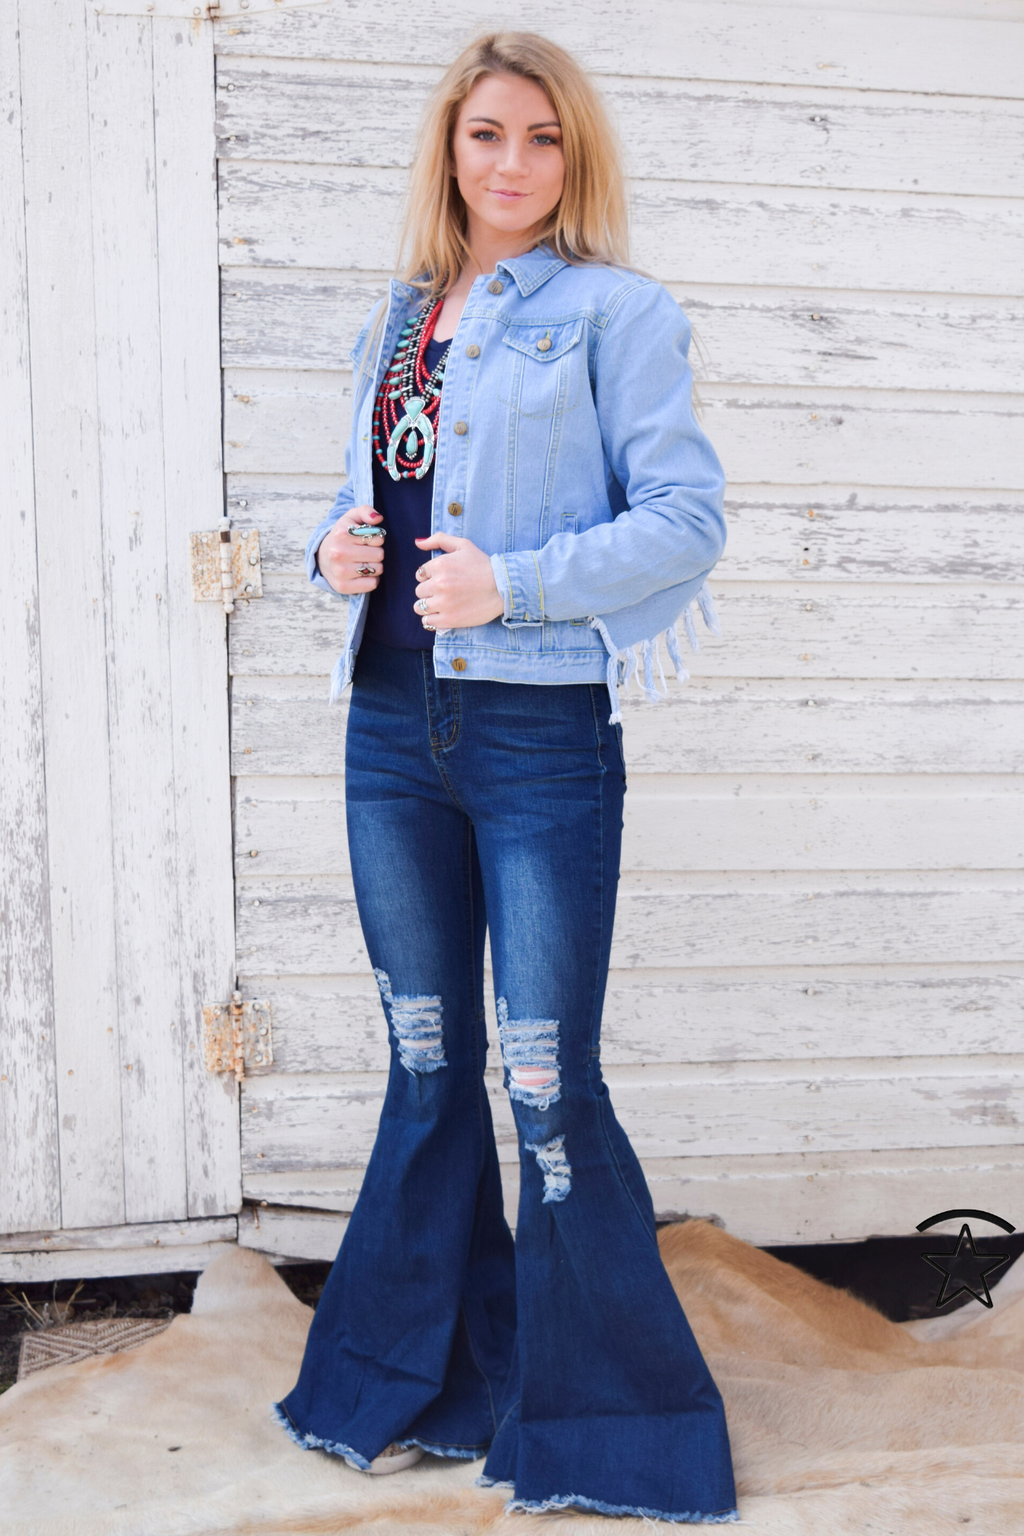 Fringe Jacket - White Owl Creek Boutique